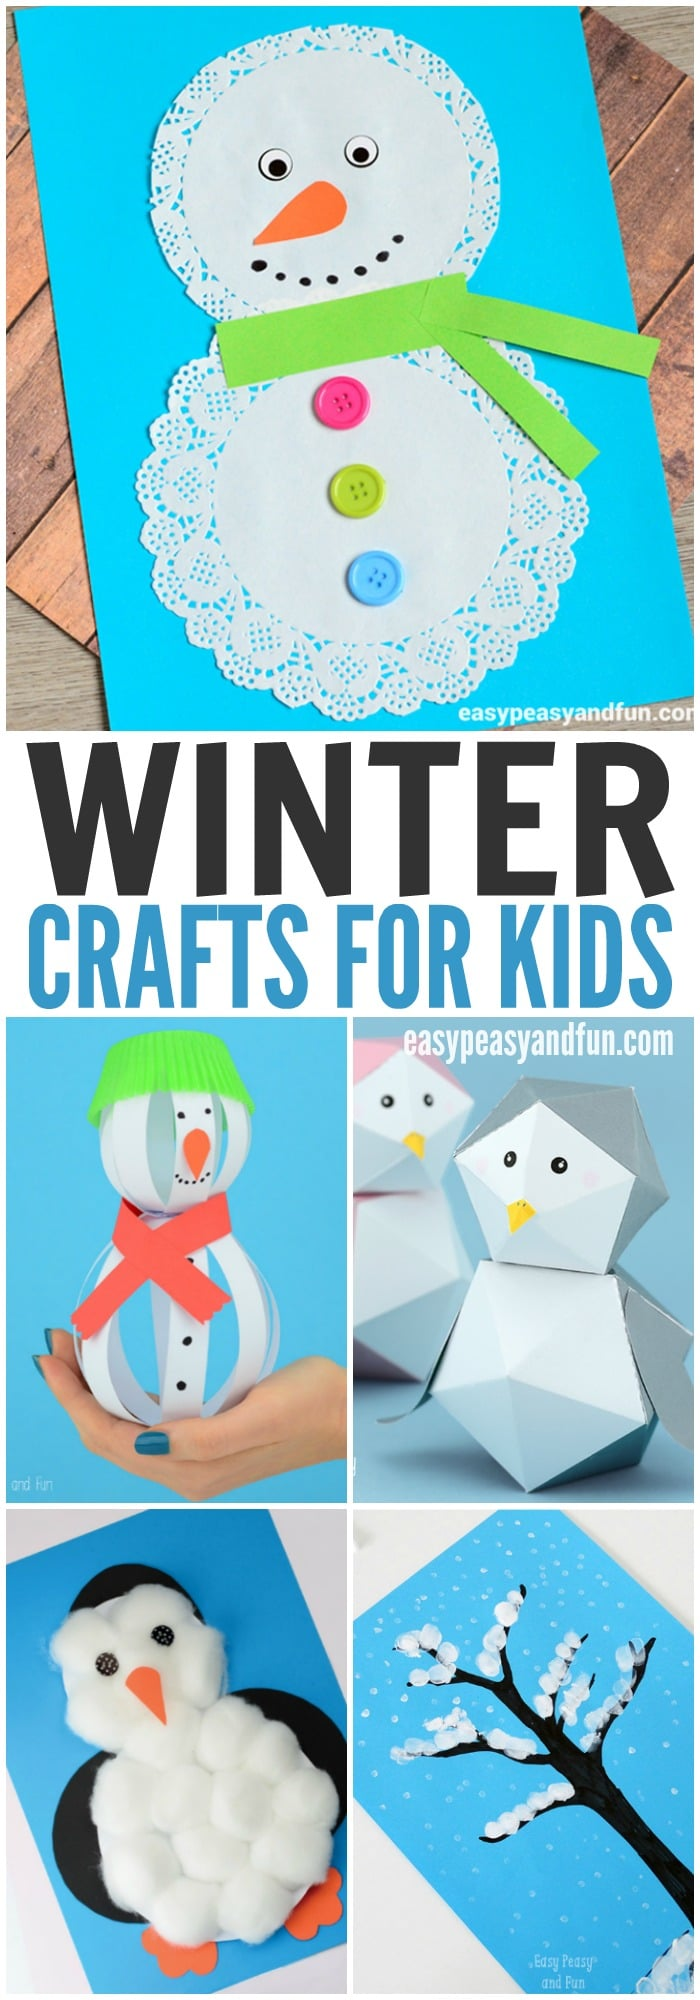 Winter Crafts For Kids To Make Fun Art And Craft Ideas For All